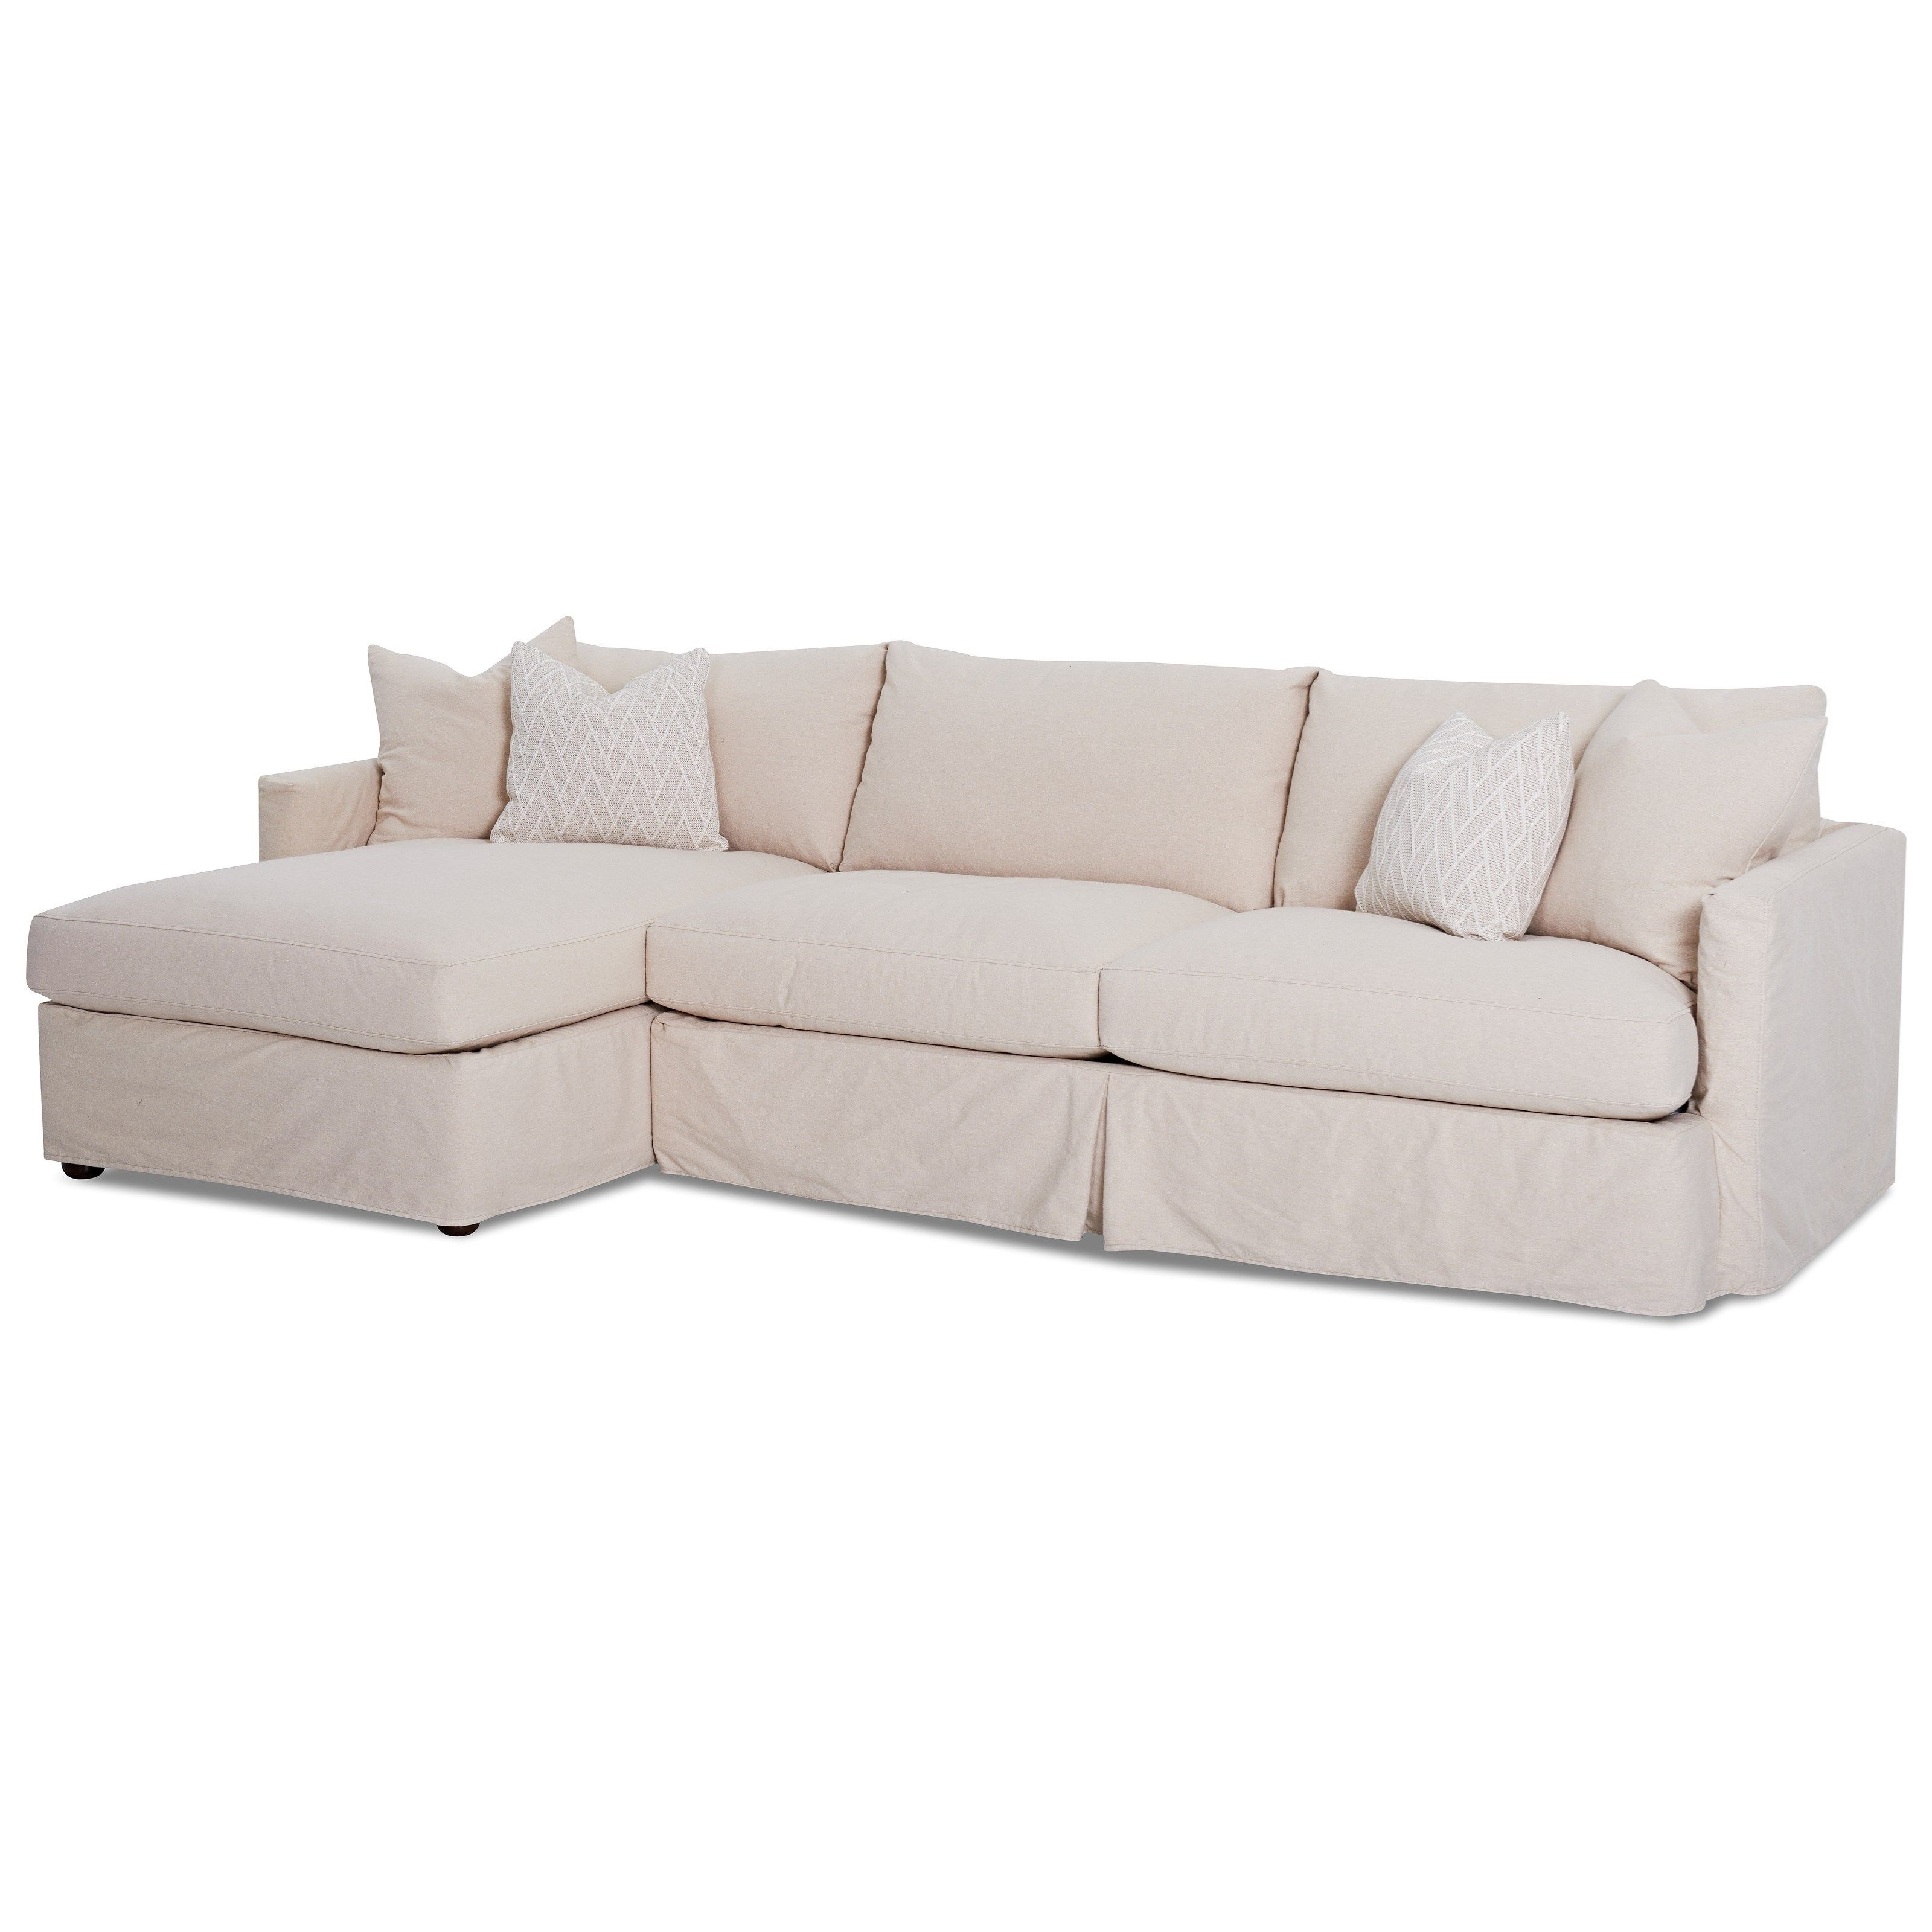 Leisure 2 Pc Sectional Sofa With Slipcoverklaussner | Living In Cohen Down 2 Piece Sectionals (View 12 of 25)